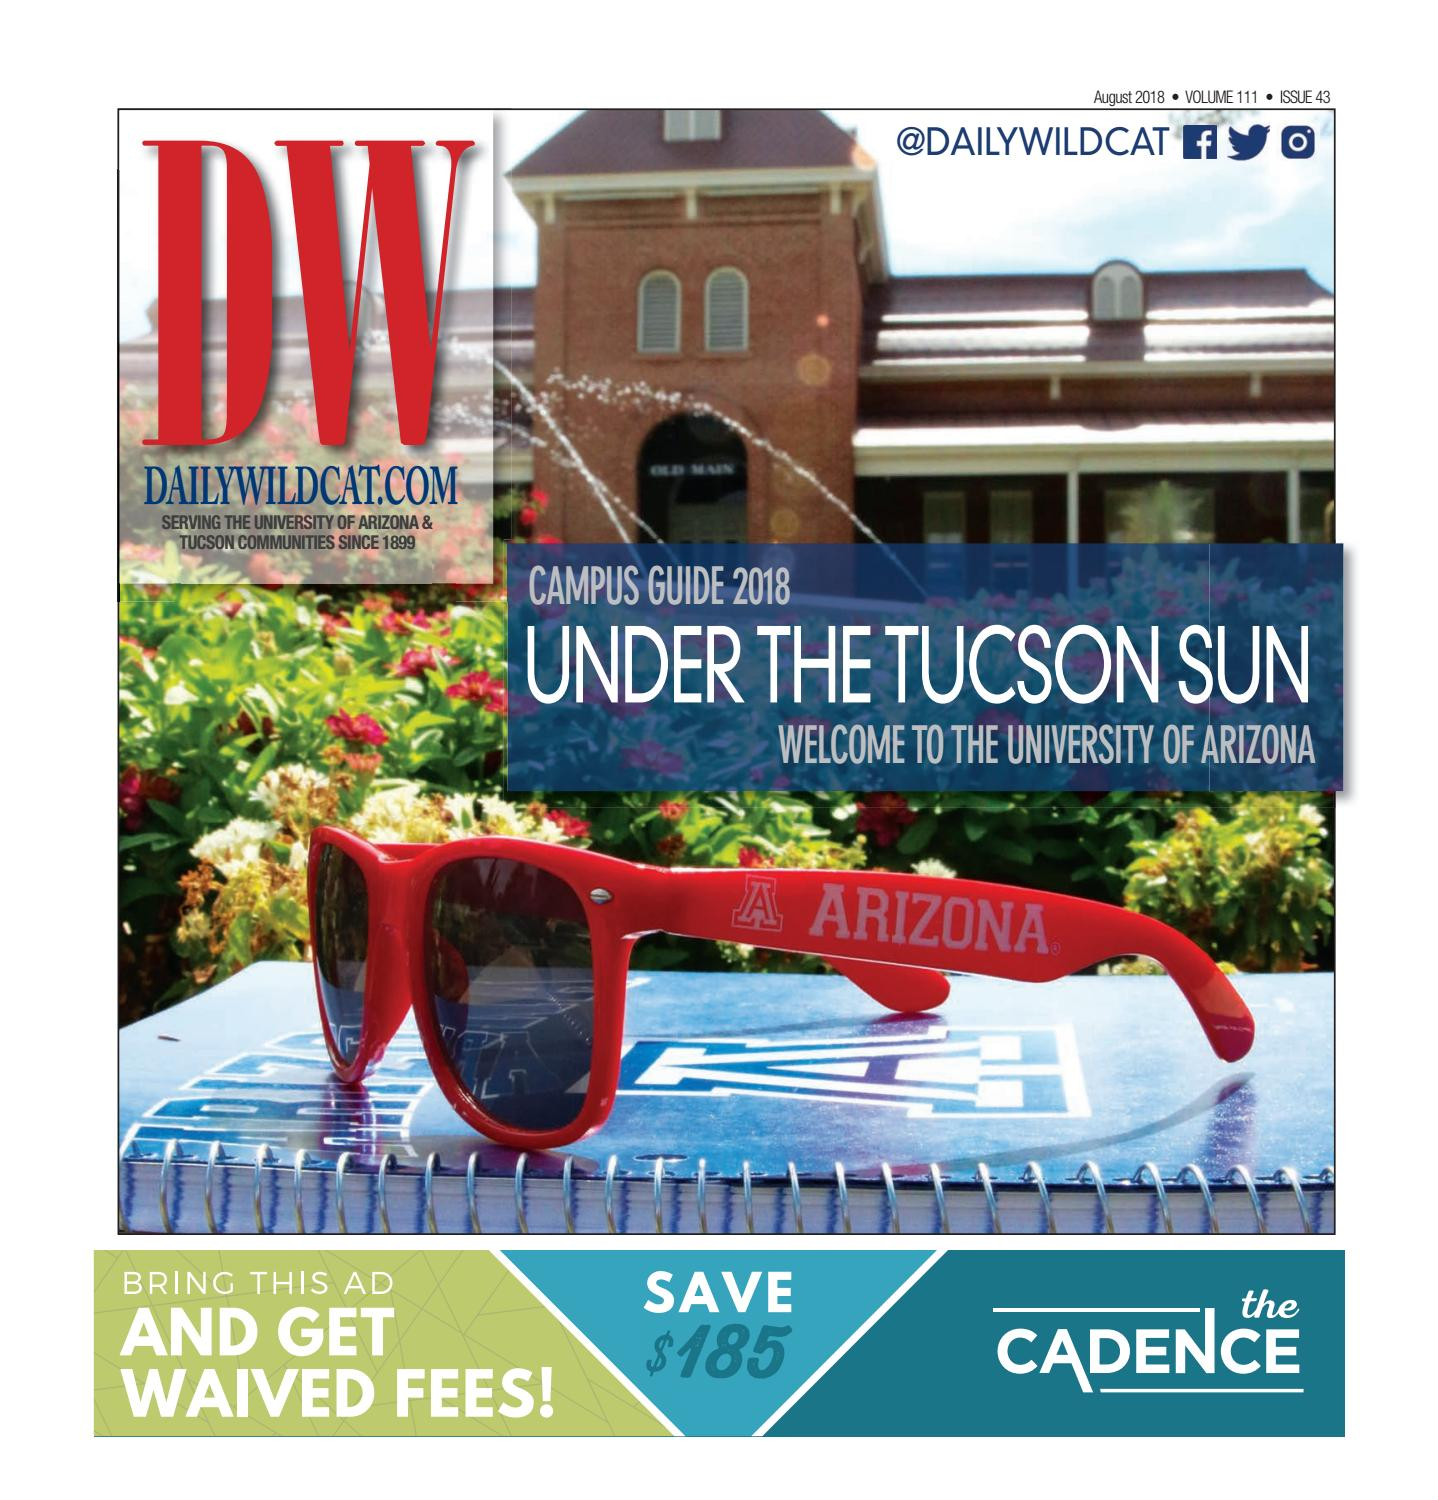 Campus Guide 2018 by Arizona Daily Wildcat - issuu